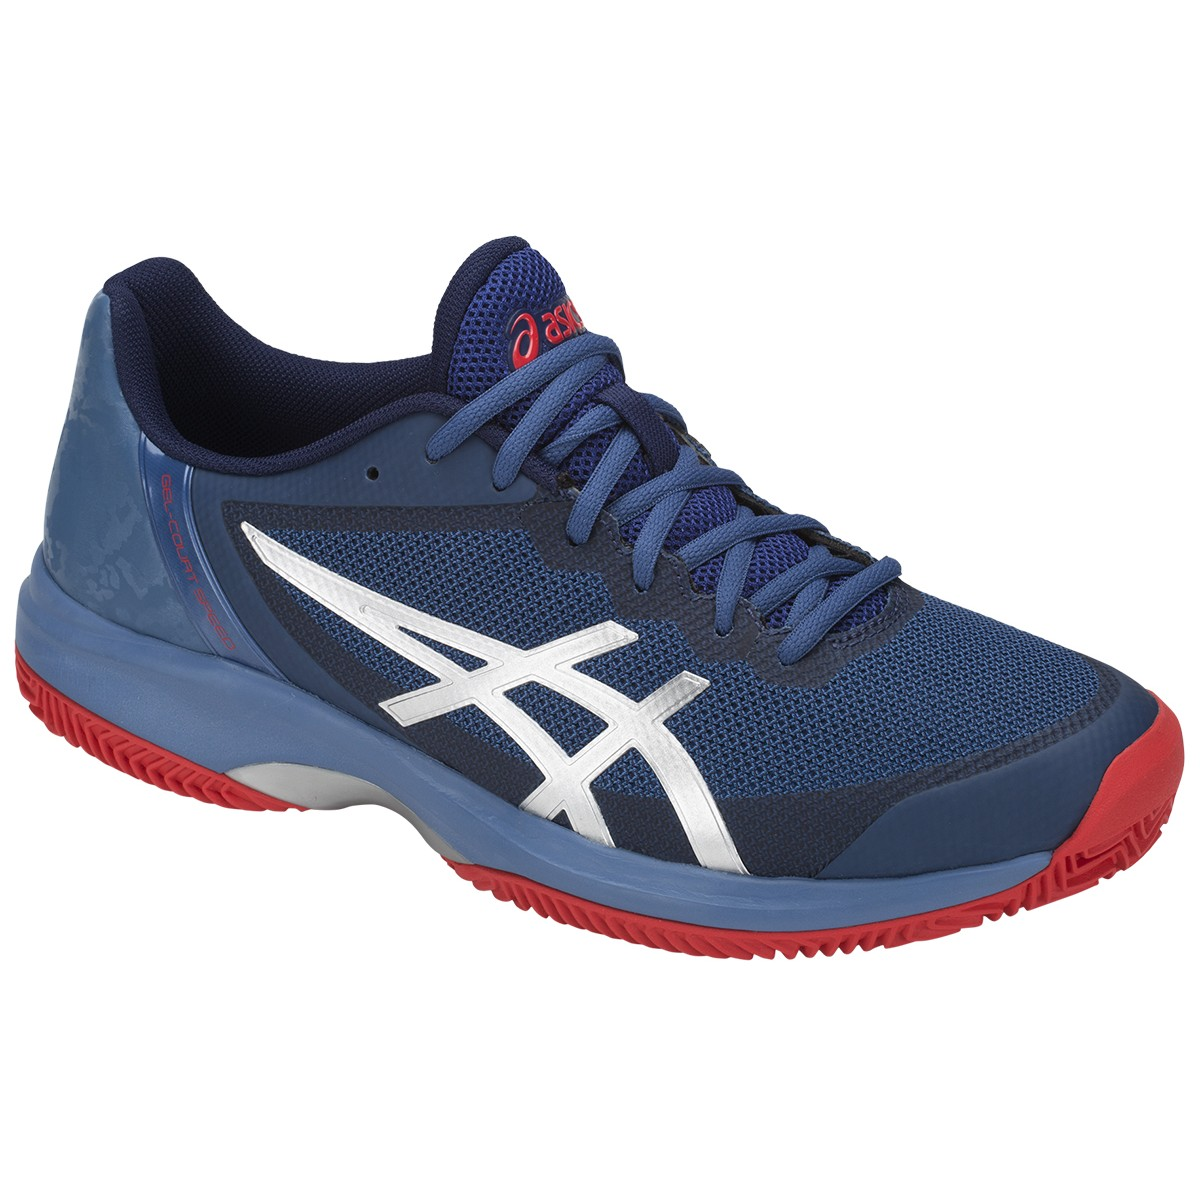 mermelada tofu Negociar  Asics Gel Court Speed Clay - Navy - Recensioni e Prezzi - Tennis Scanner